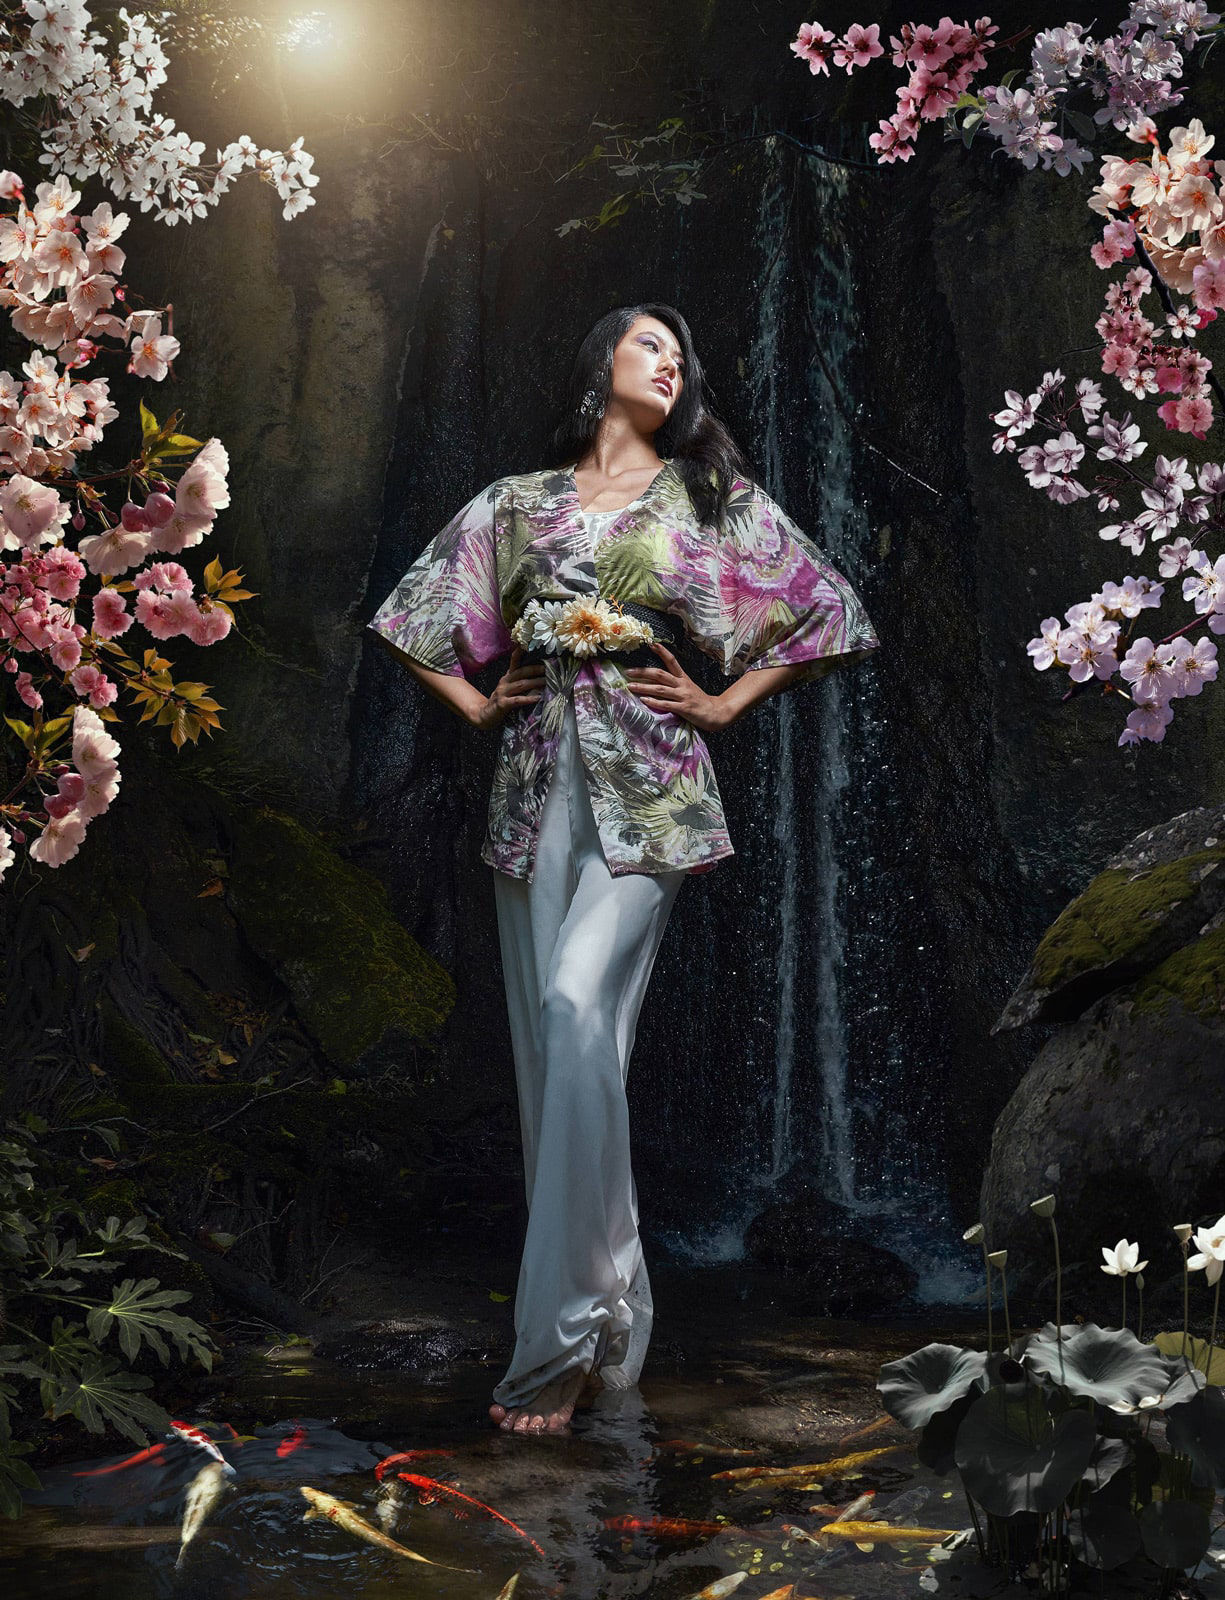 fashion photography of a cinese model wearing a kimono posing in nature with waterfalls and cherryblooms